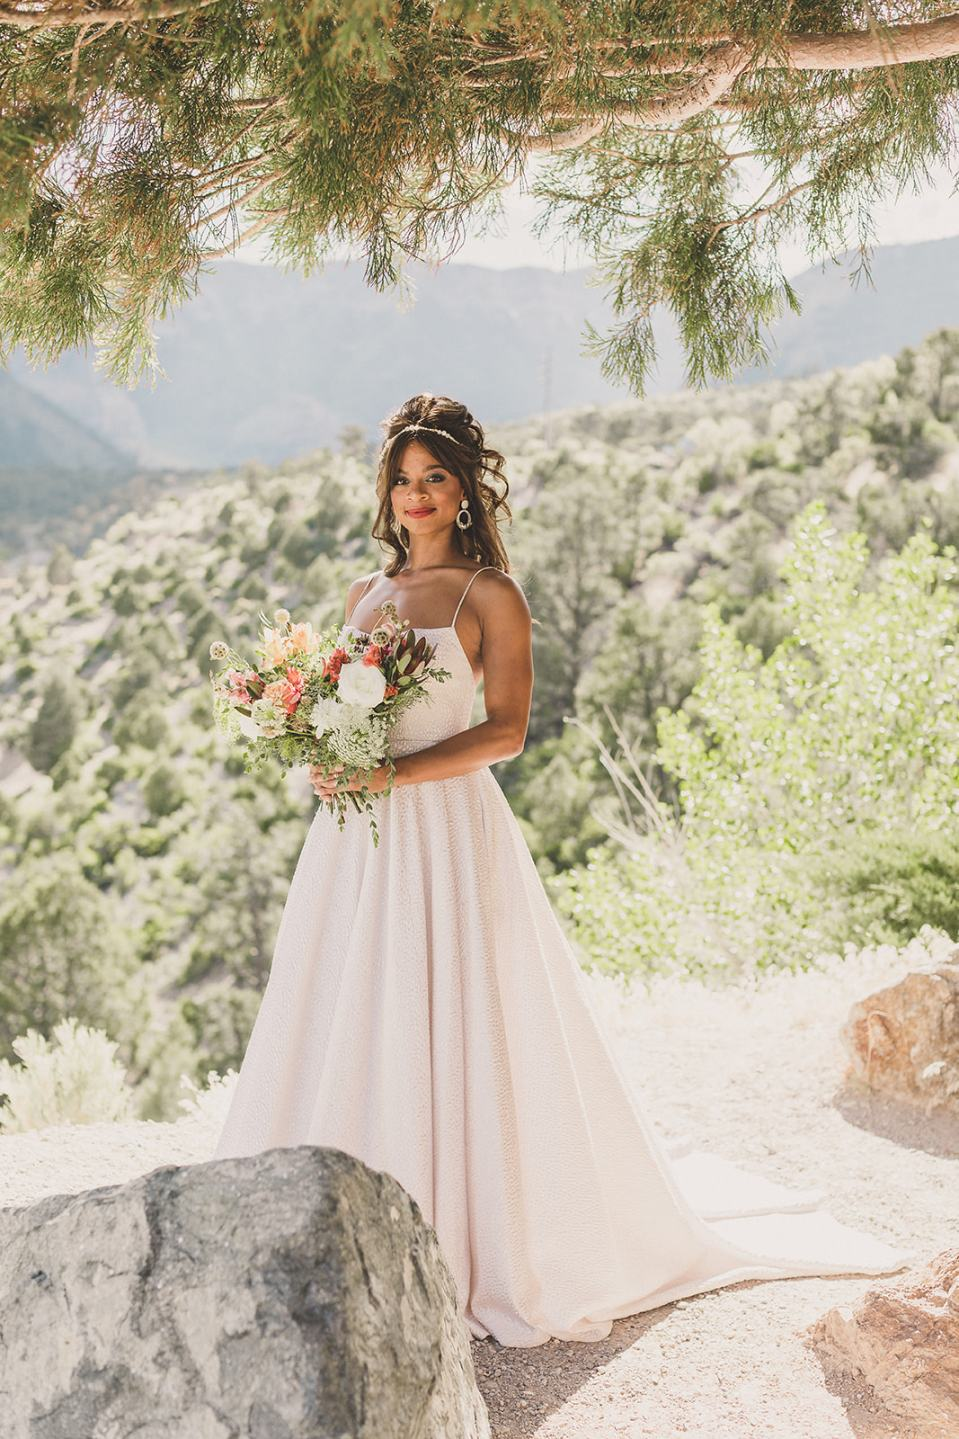 Las Vegas elopement style photographed by Taylor Made Photography